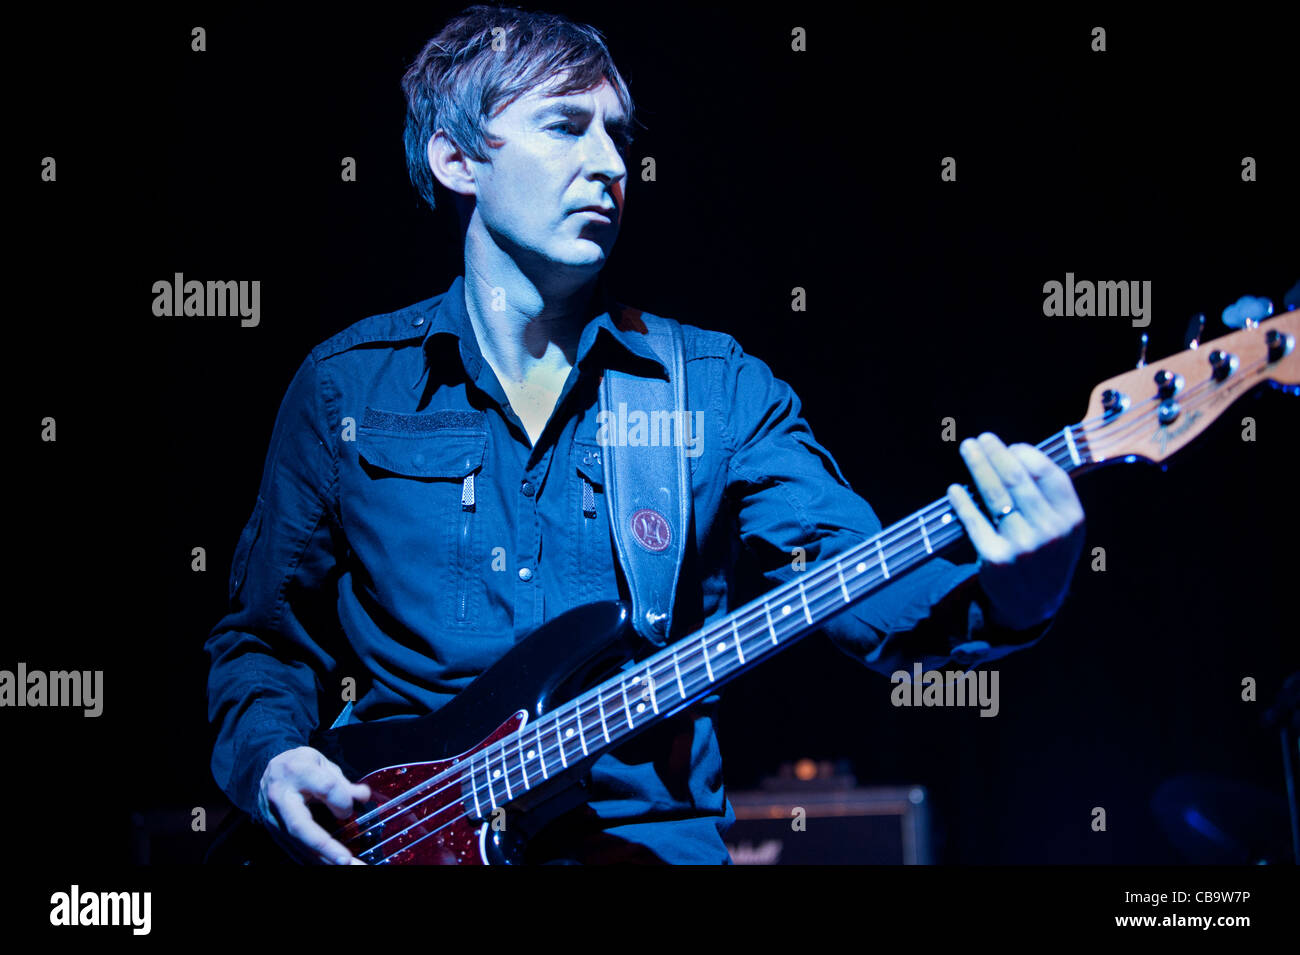 Jon 'Stan' White, bass guitarist,with the band, Magazine, performing at Manchester Academy 4-11-11 - Stock Image